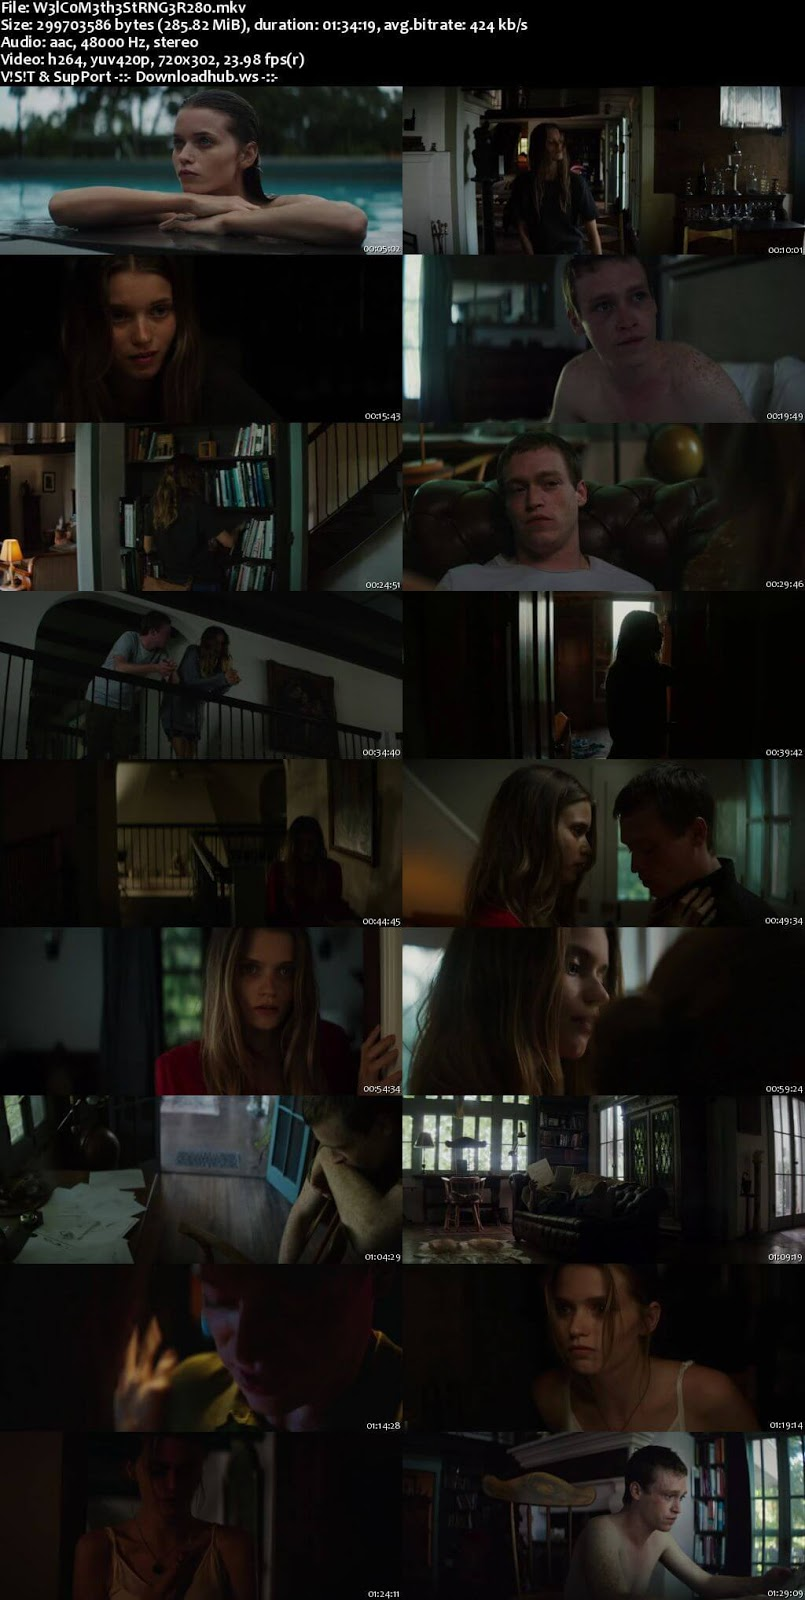 Welcome the Stranger 2018 English 480p Web-DL ESubs